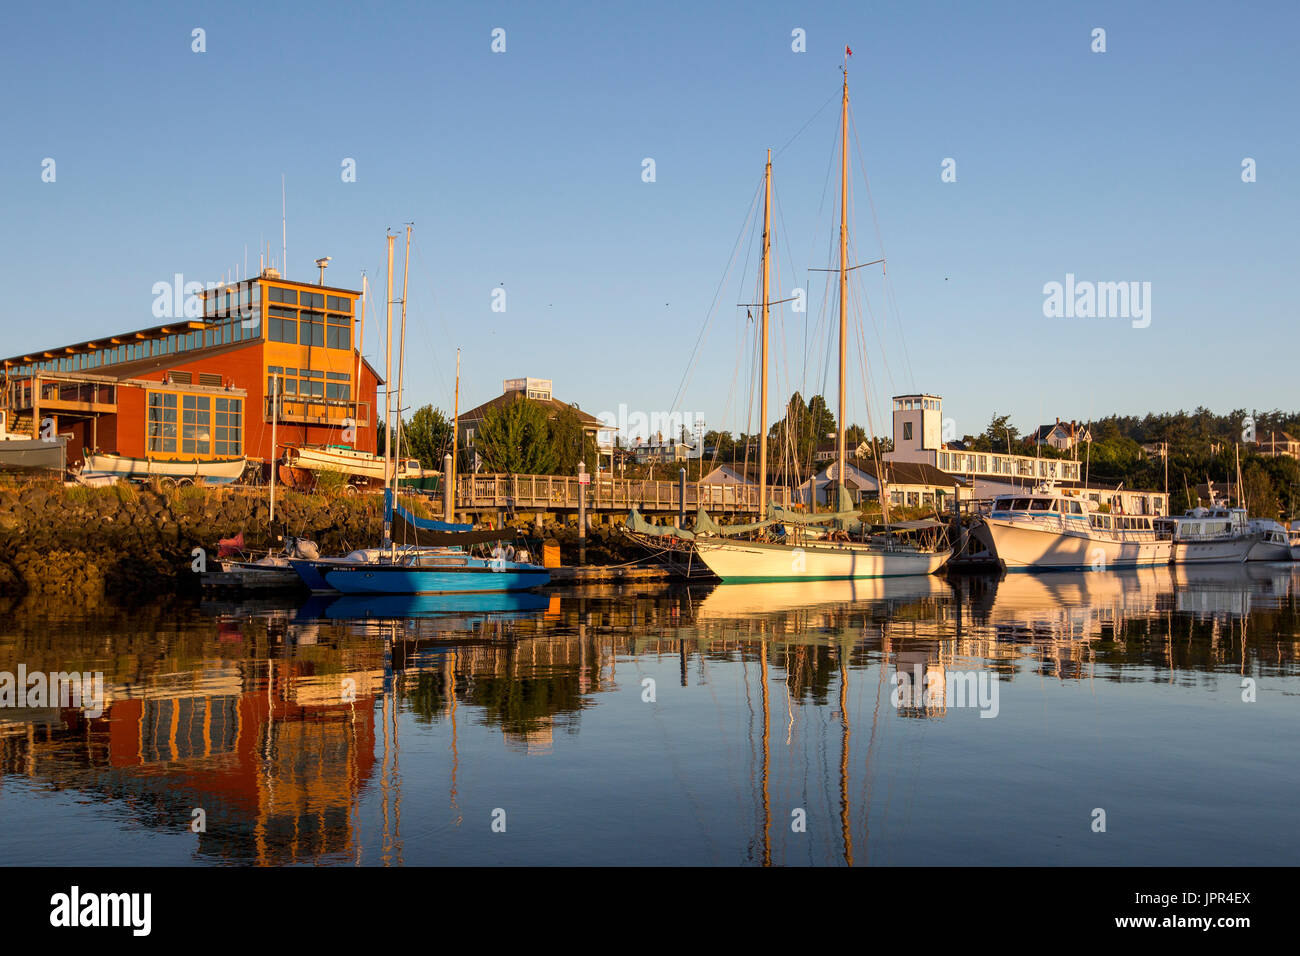 Port Townsend marina at Point Hudson with schooner sailing boat Martha during sunrise. Northwest Maritime Center - Stock Image